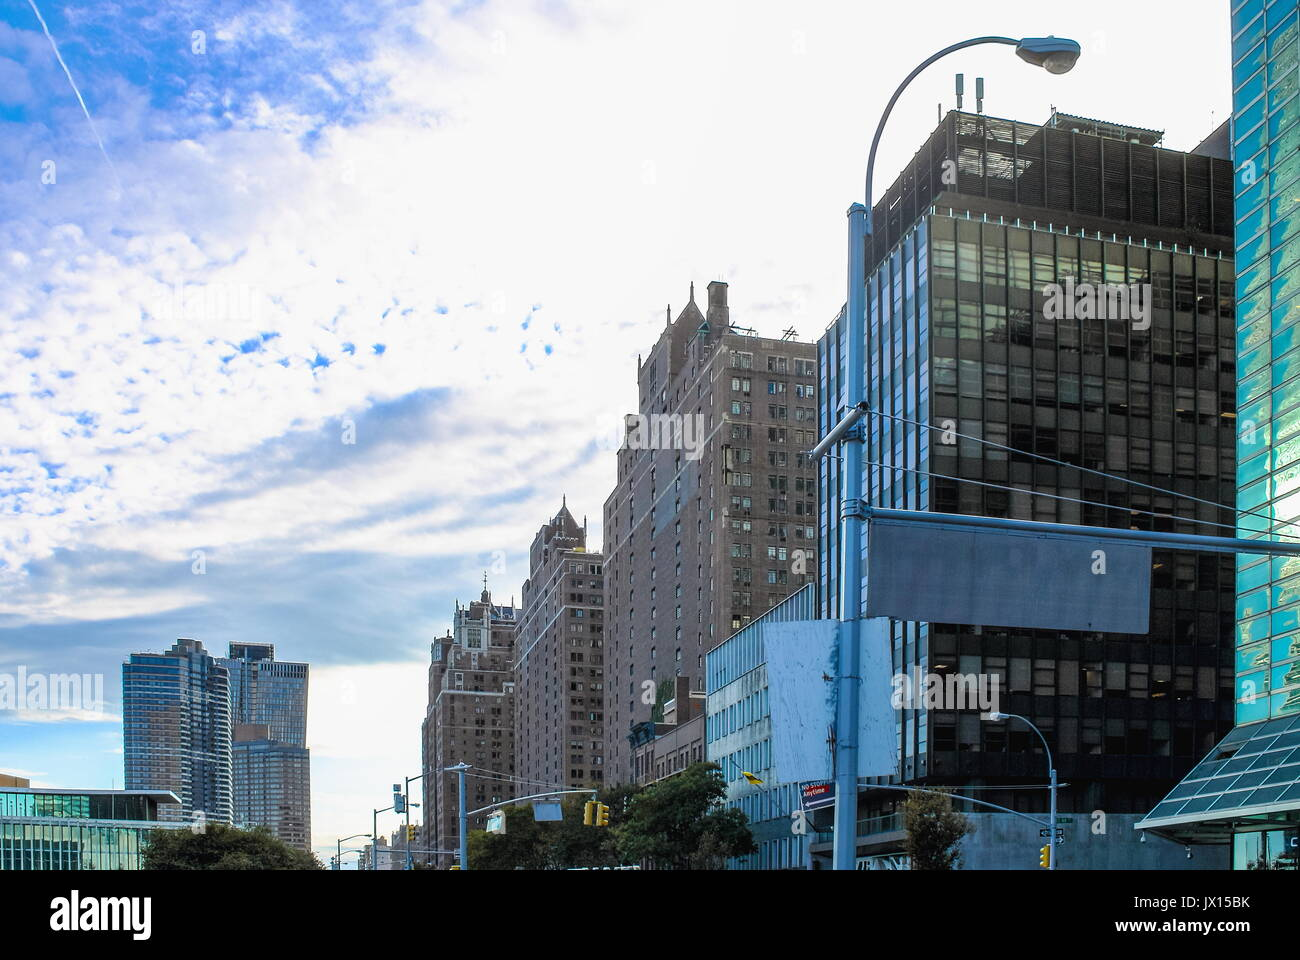 New York, USA - 26 September 2016: Buildings lining First Avenue looking toward lower Manhattan from 44th Street Stock Photo